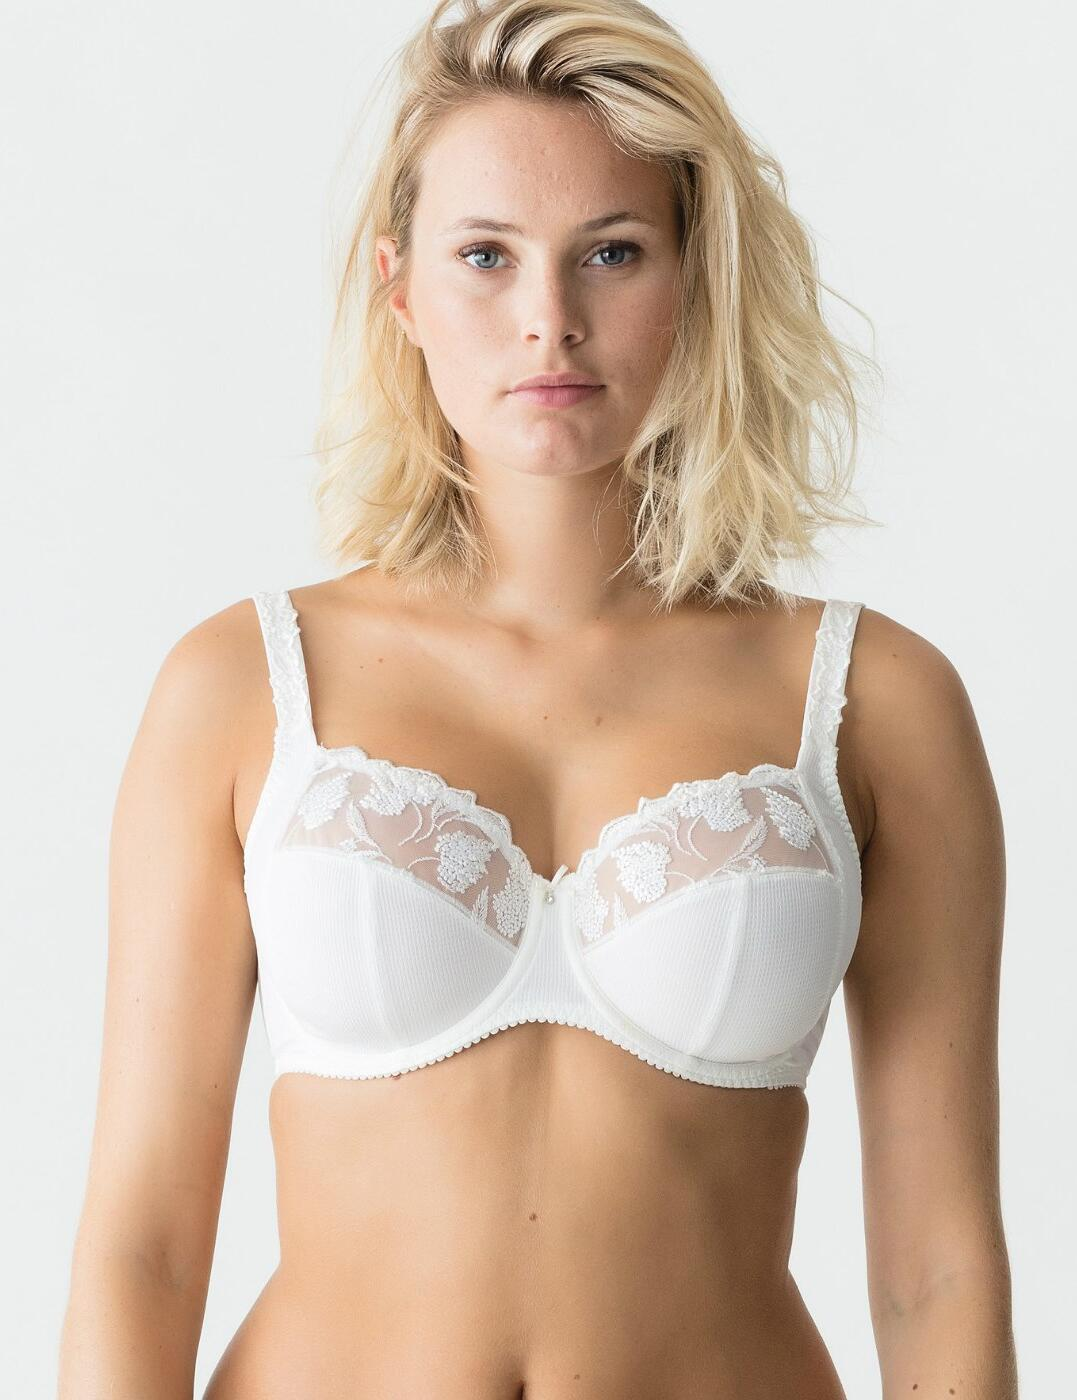 0162830/0162831 Prima Donna Eternal Full Cup Wire Bra - 0162830/0162831 Natural